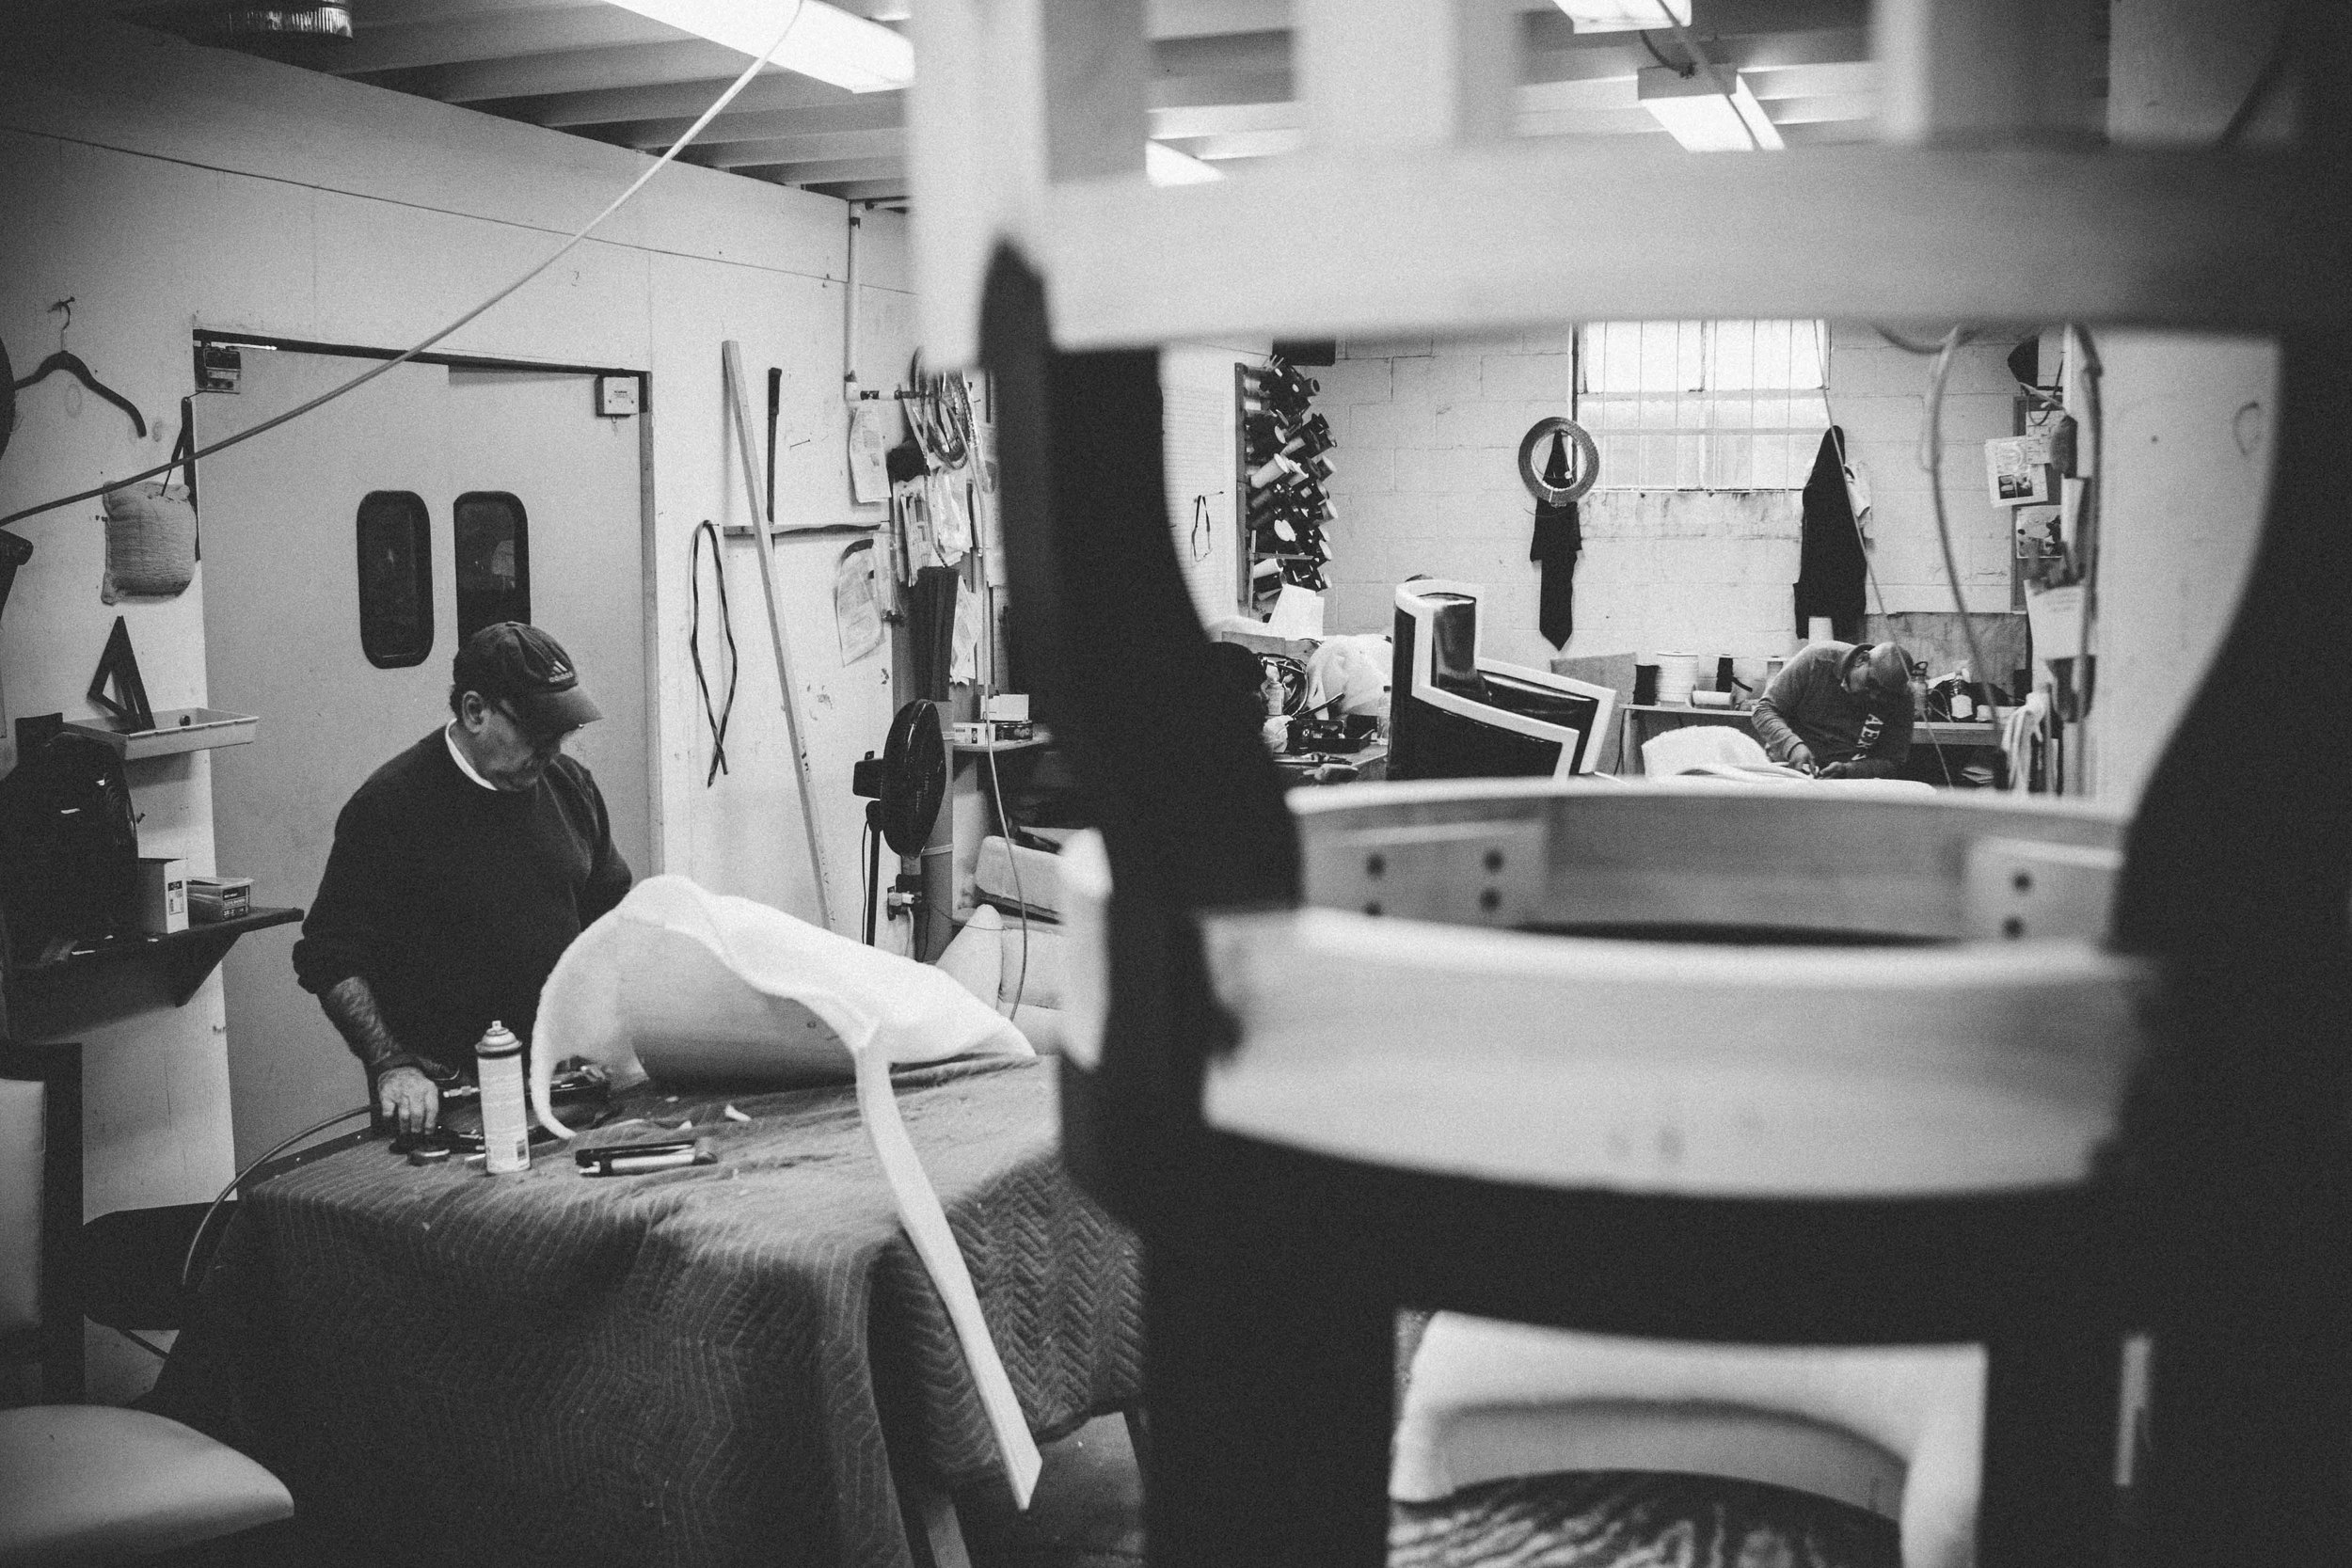 Part of the upholstery shop in use while one piece awaits its turn to have a cushy seat crafted.